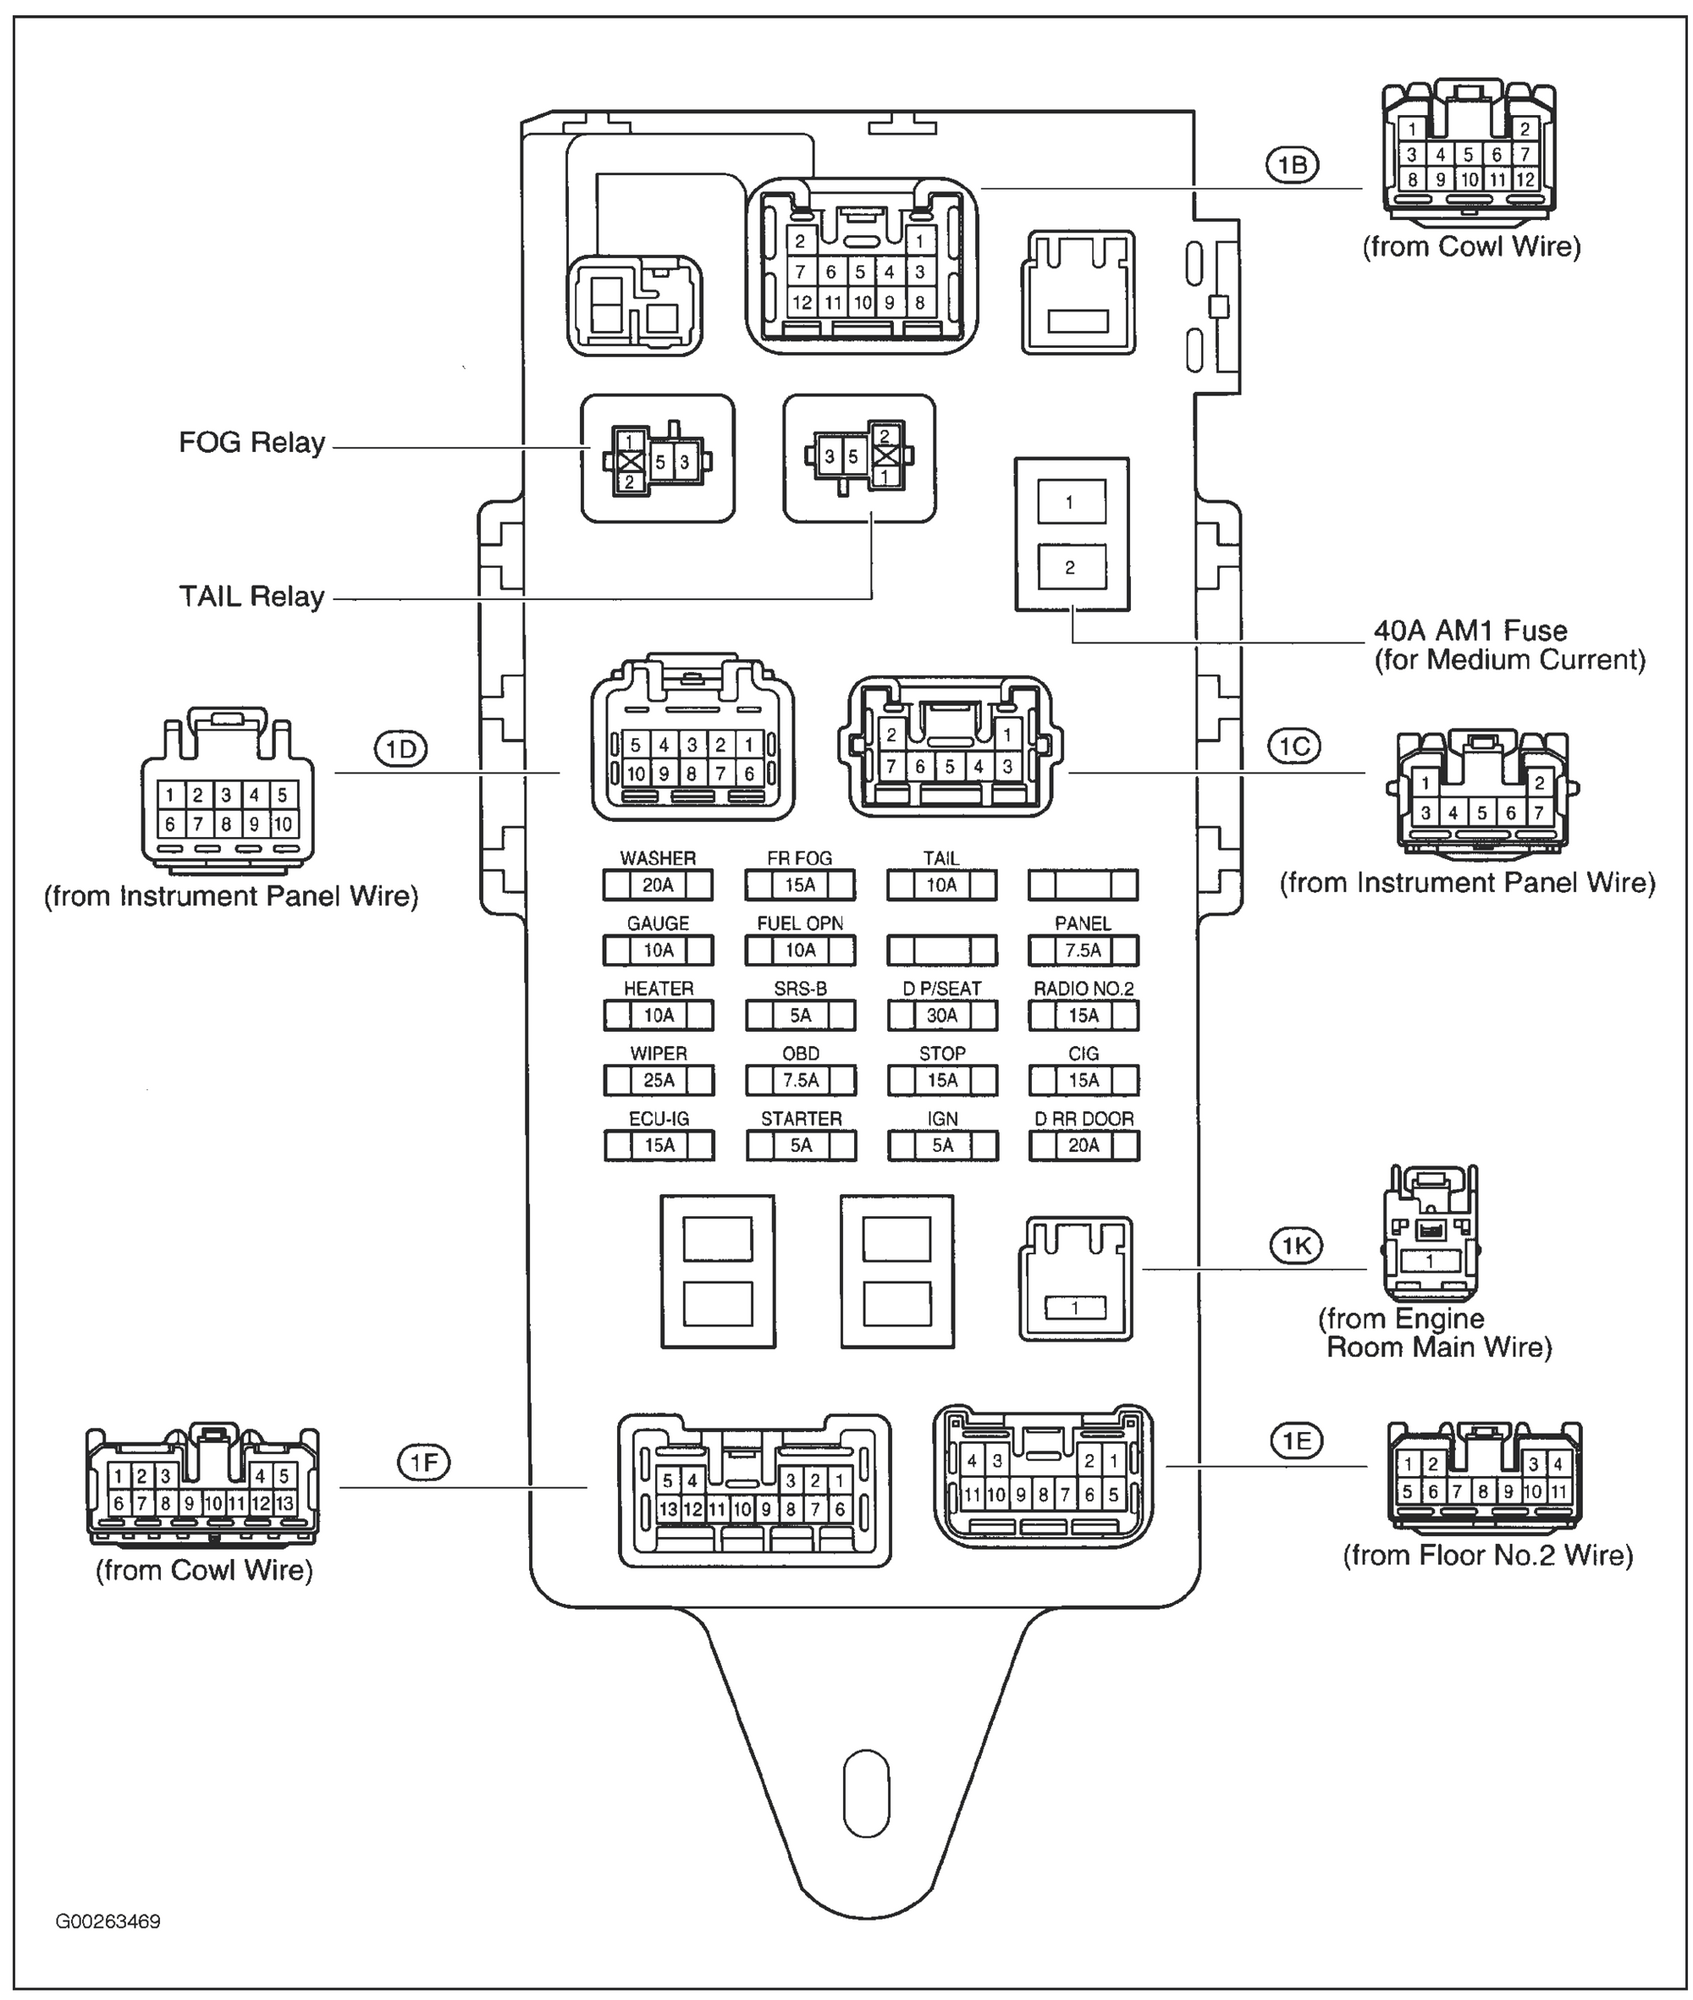 2008 Lexus Is250 Fuse Box 2007 Remote Start Wiring Diagram Schematics Is Auto Electrical 2006